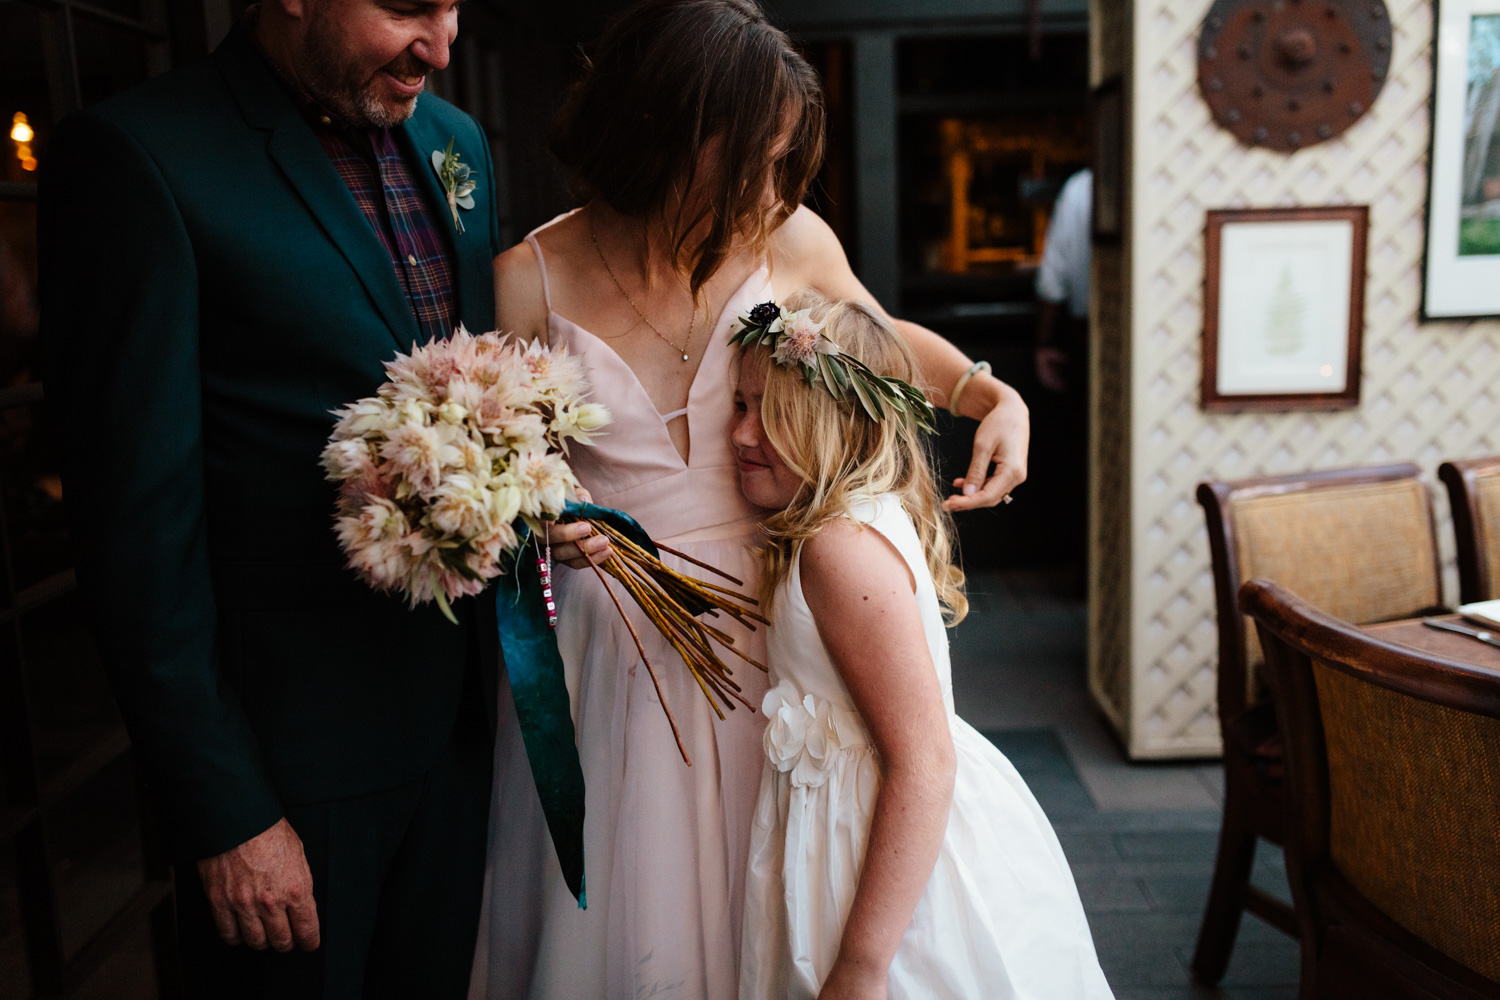 Riverside County Wedding Photographer, Five Crowns - The Gathering Season x weareleoandkat 075.JPG